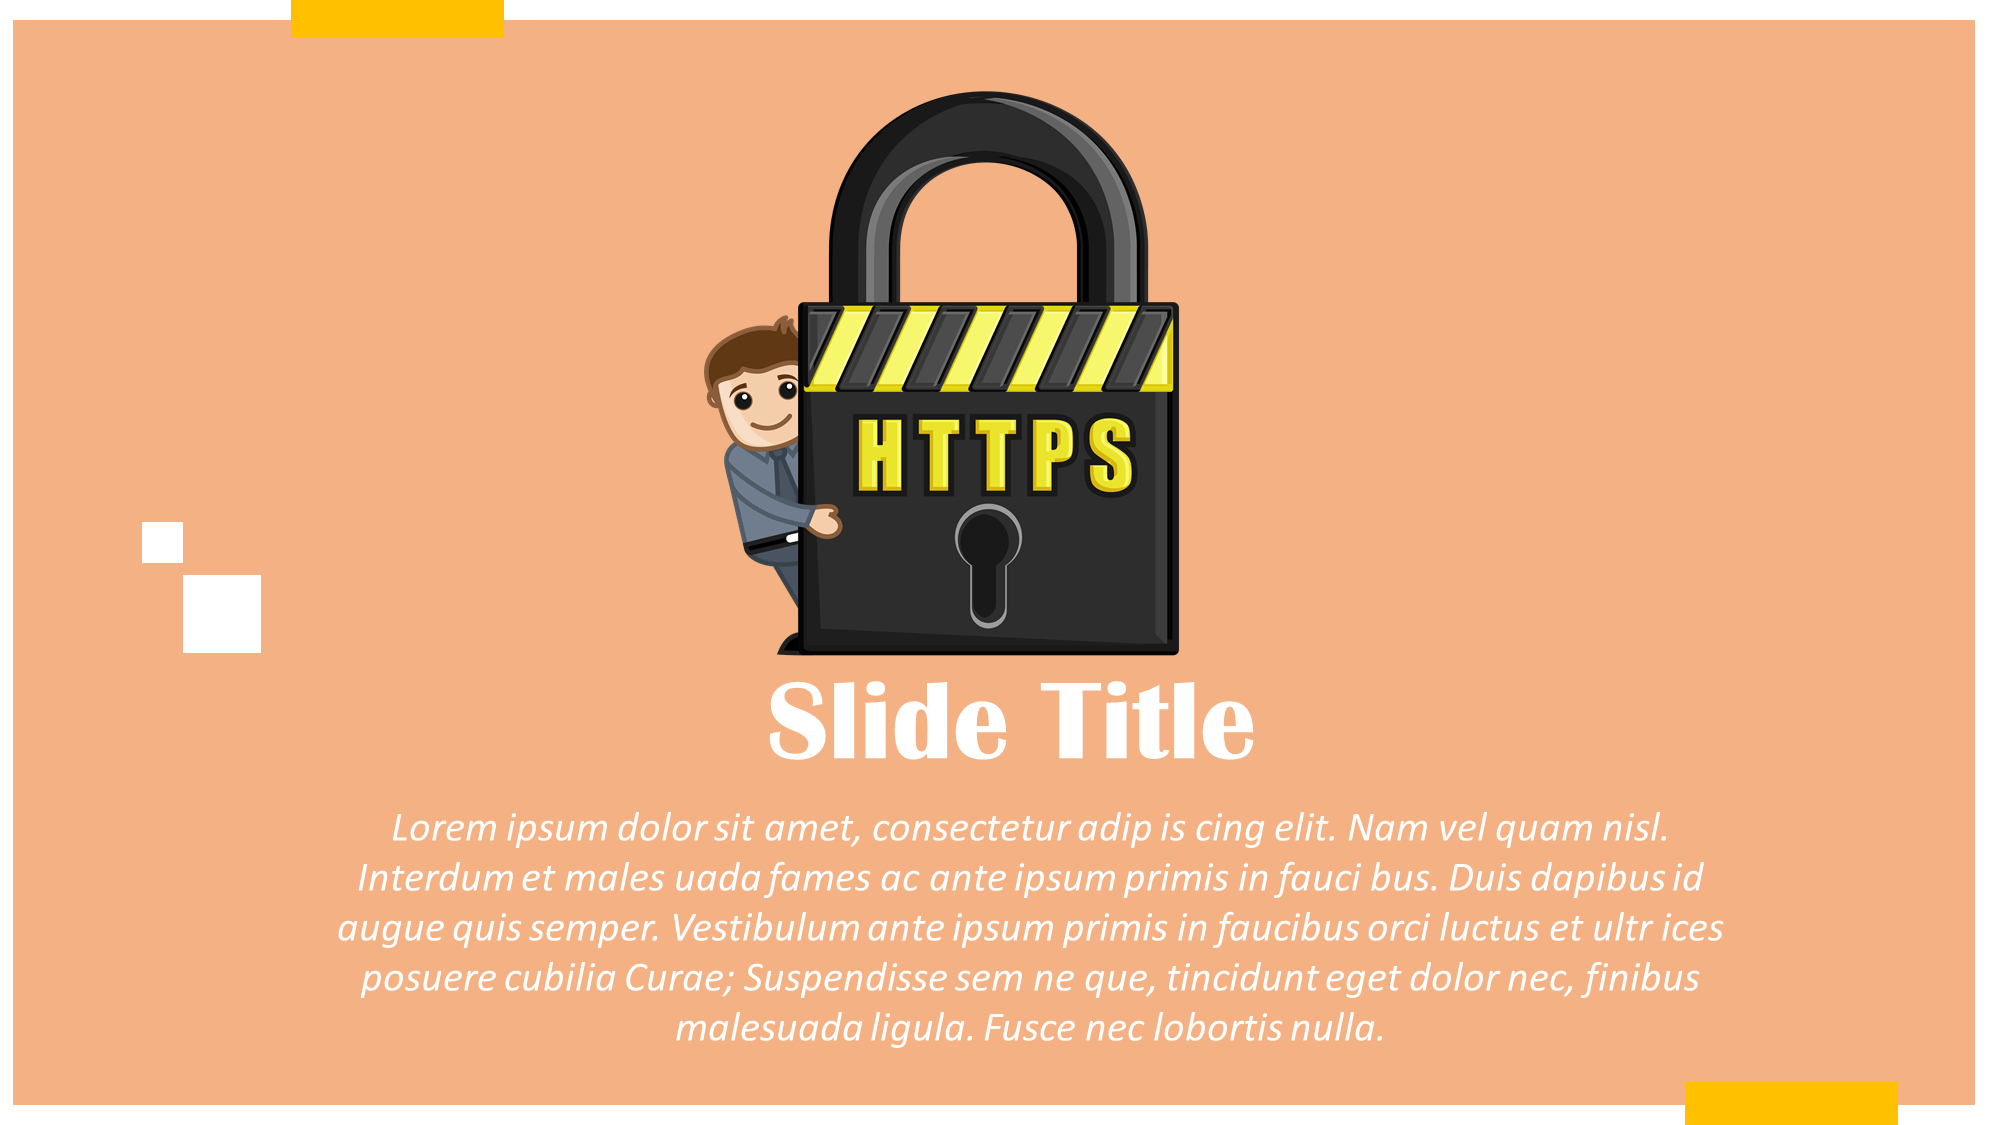 https and security presentation slide